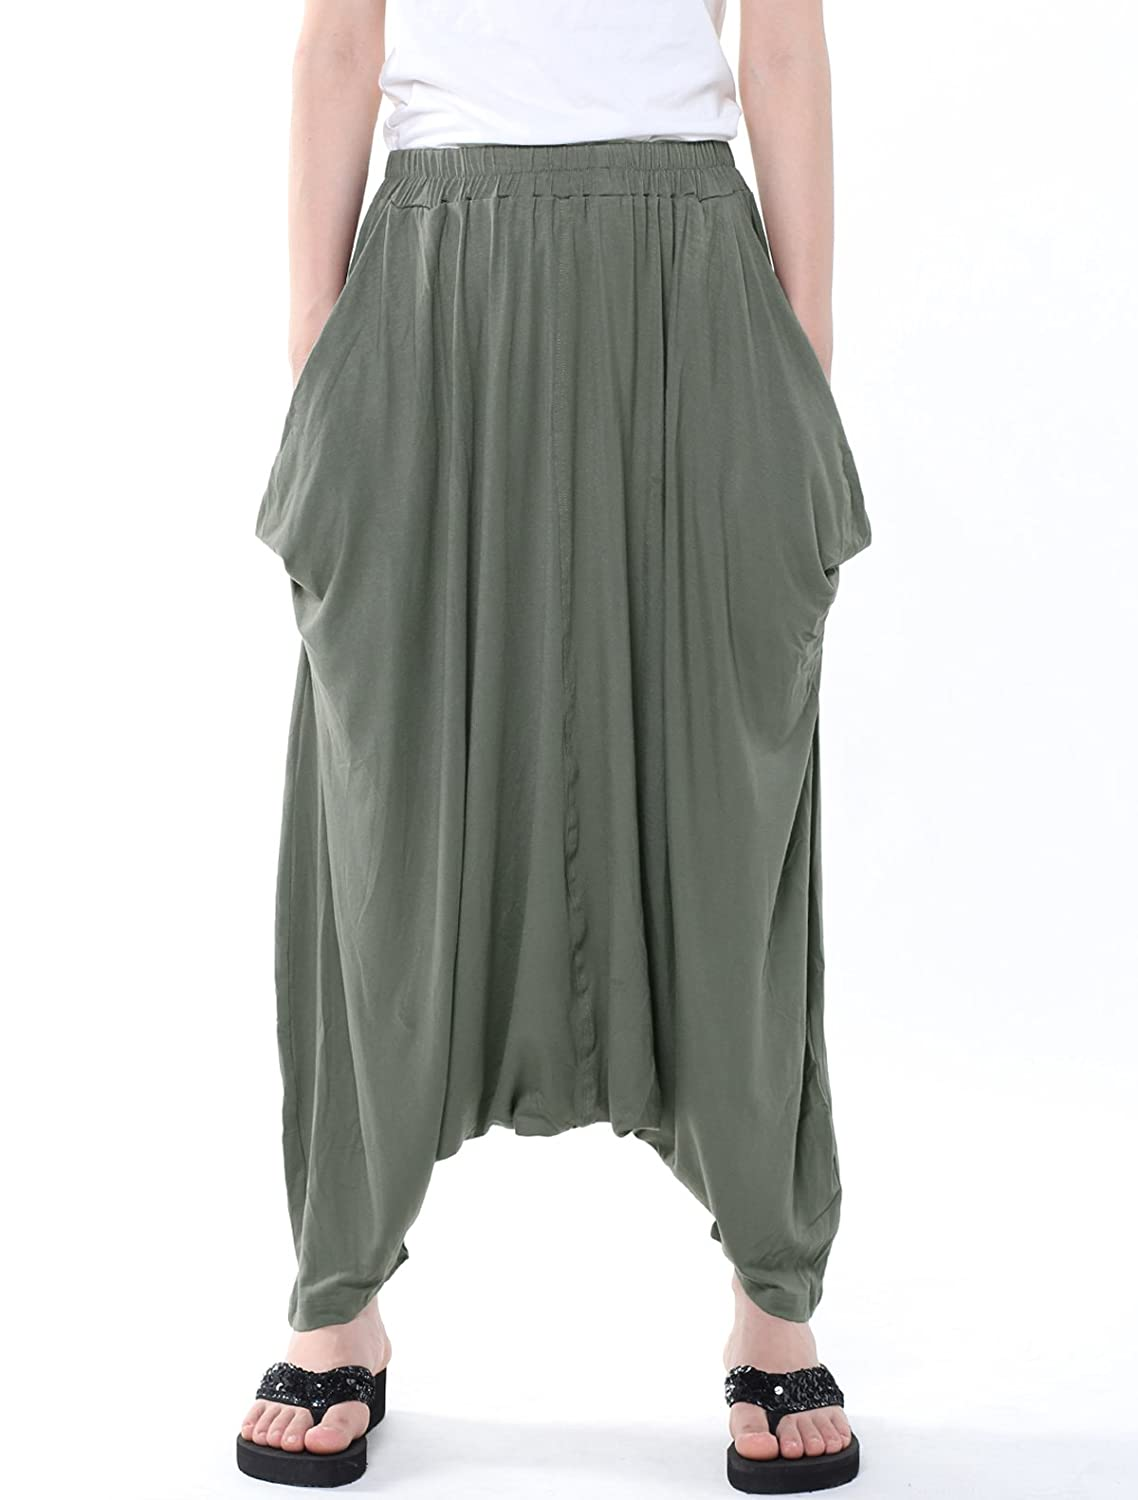 Minibee PANTS レディース B01JRF6R0K One Size|Style 2 Green Style 2 Green One Size